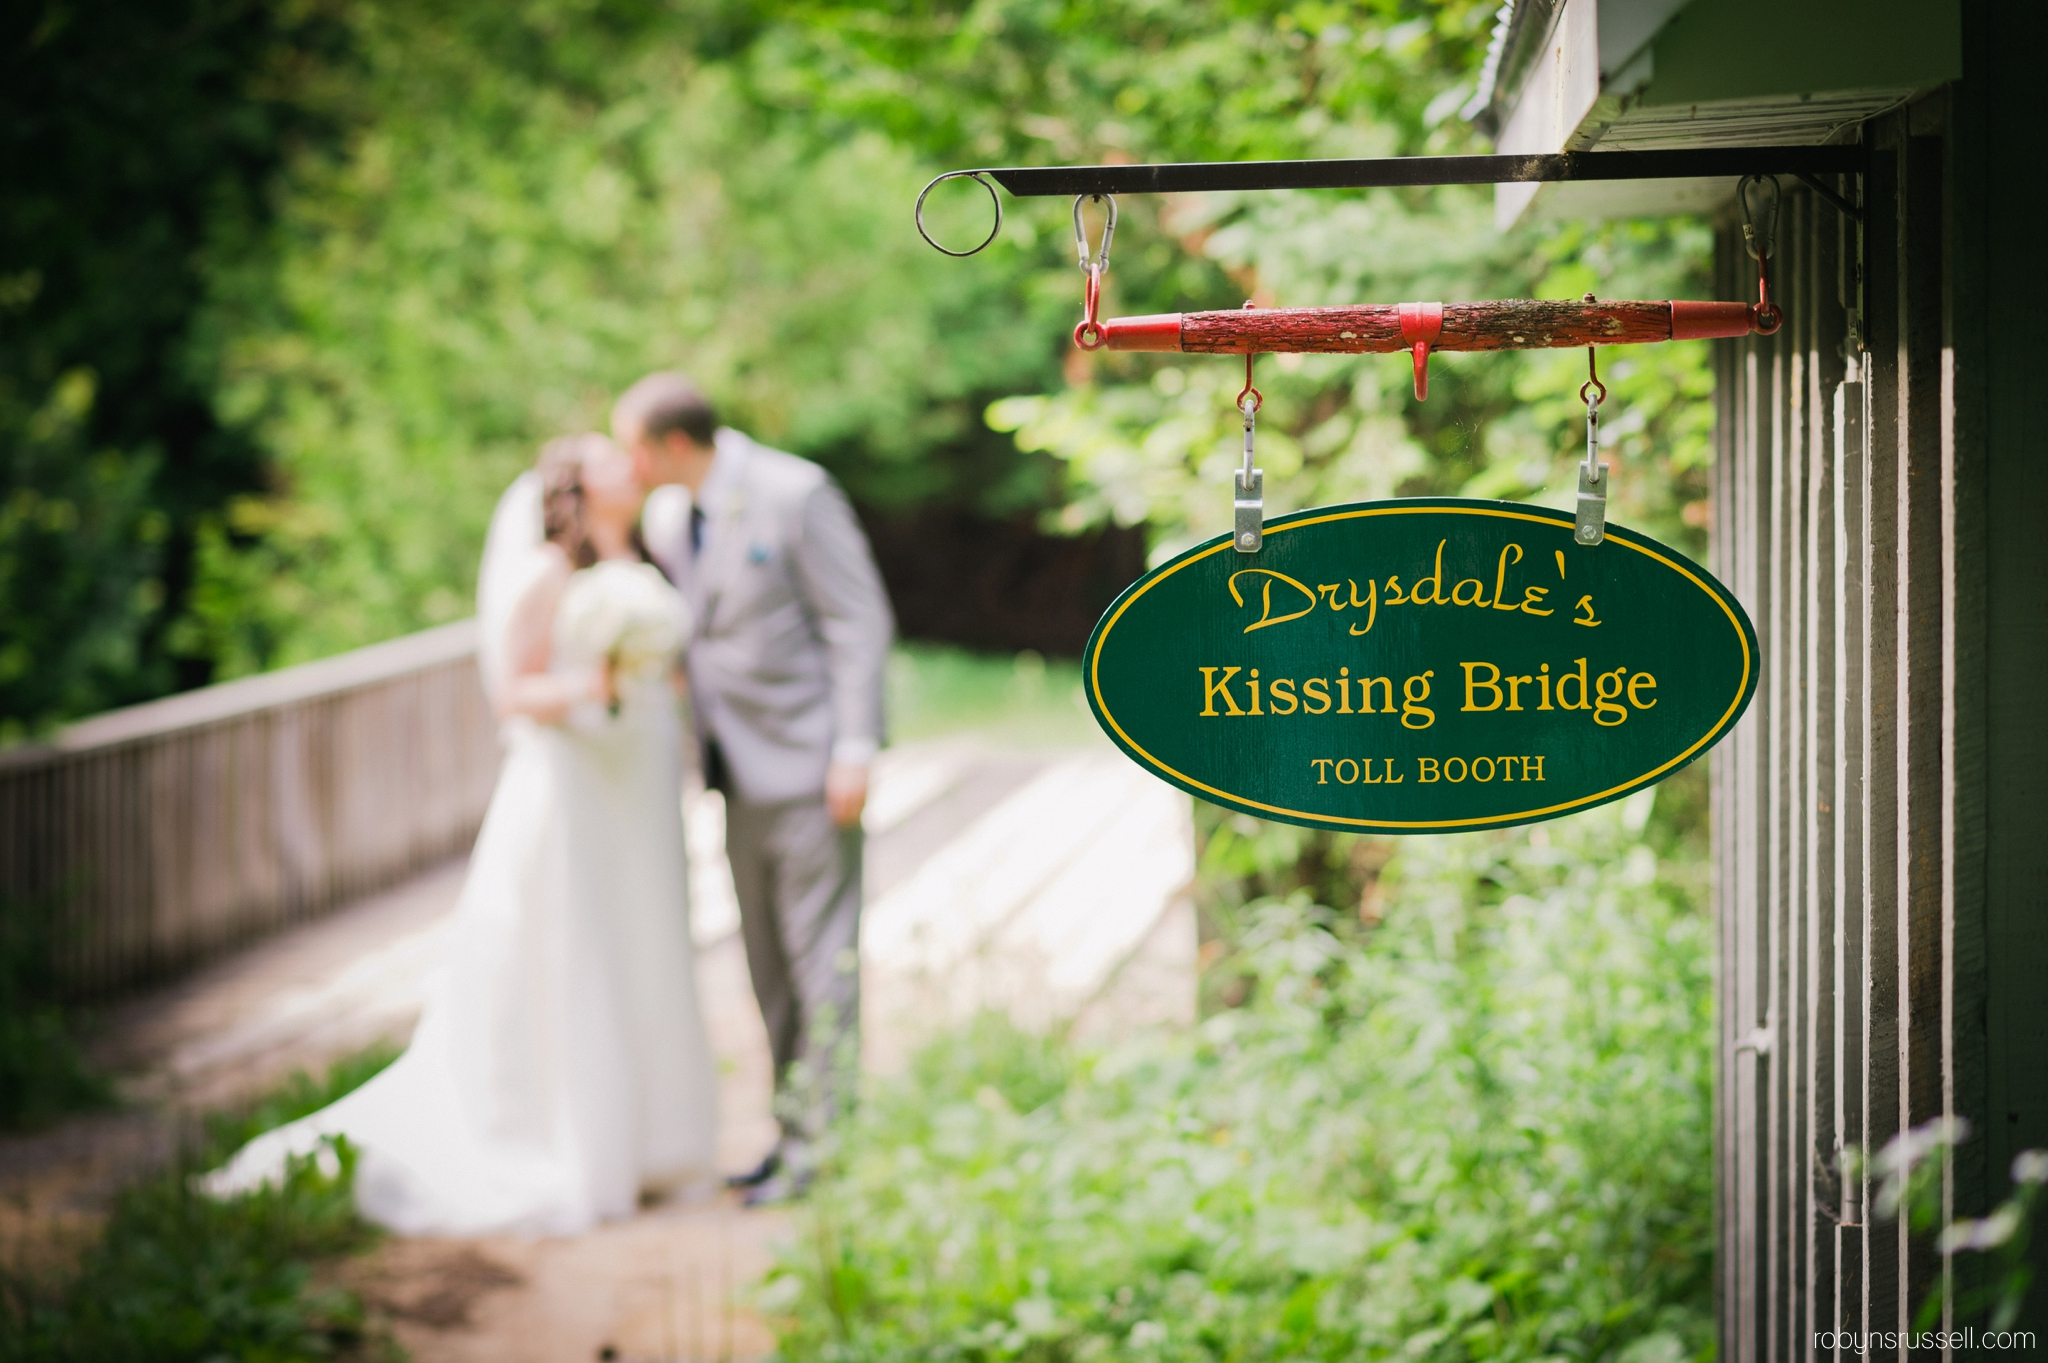 40-kissing-bridge-toll-booth-drysdale-tree-farm.jpg